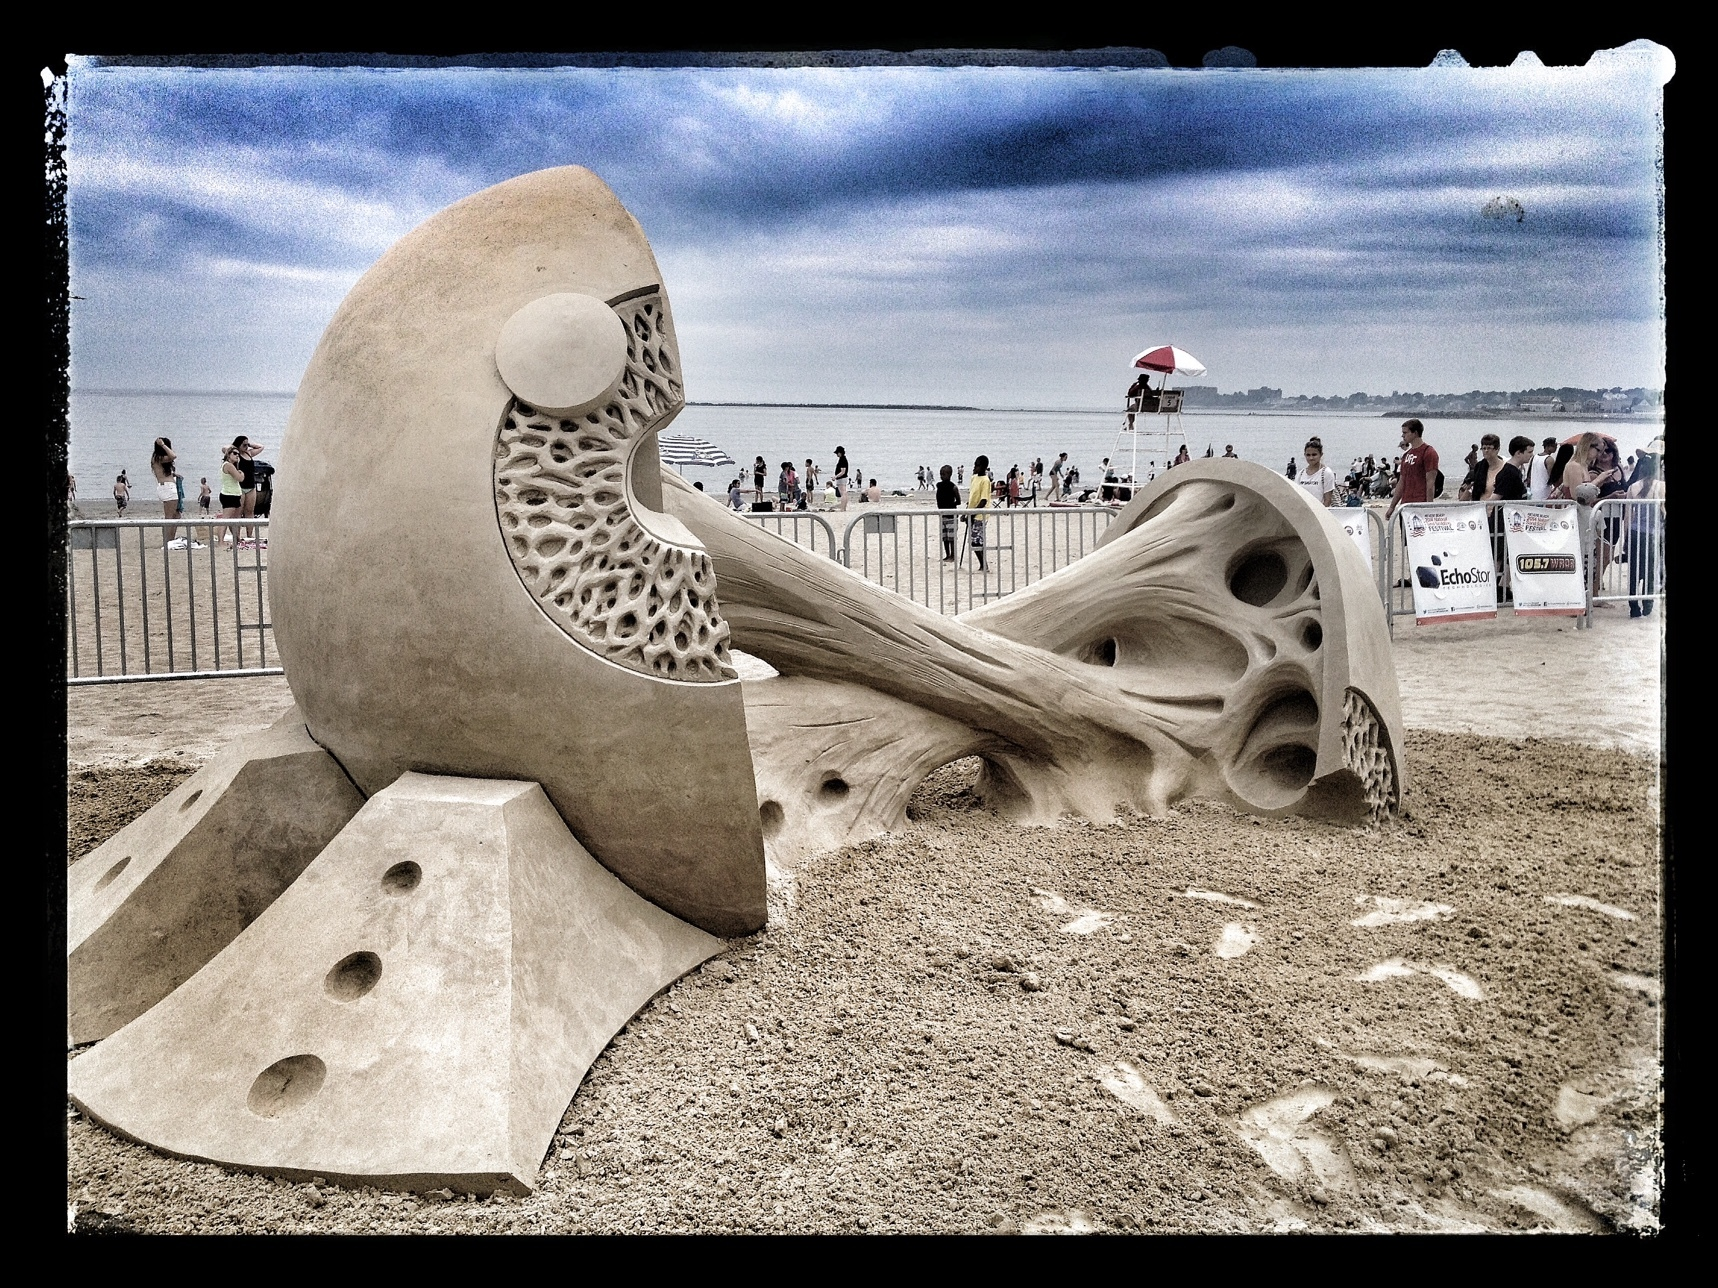 Revere Beach sand sculpture by Rusty Croft, 1st place